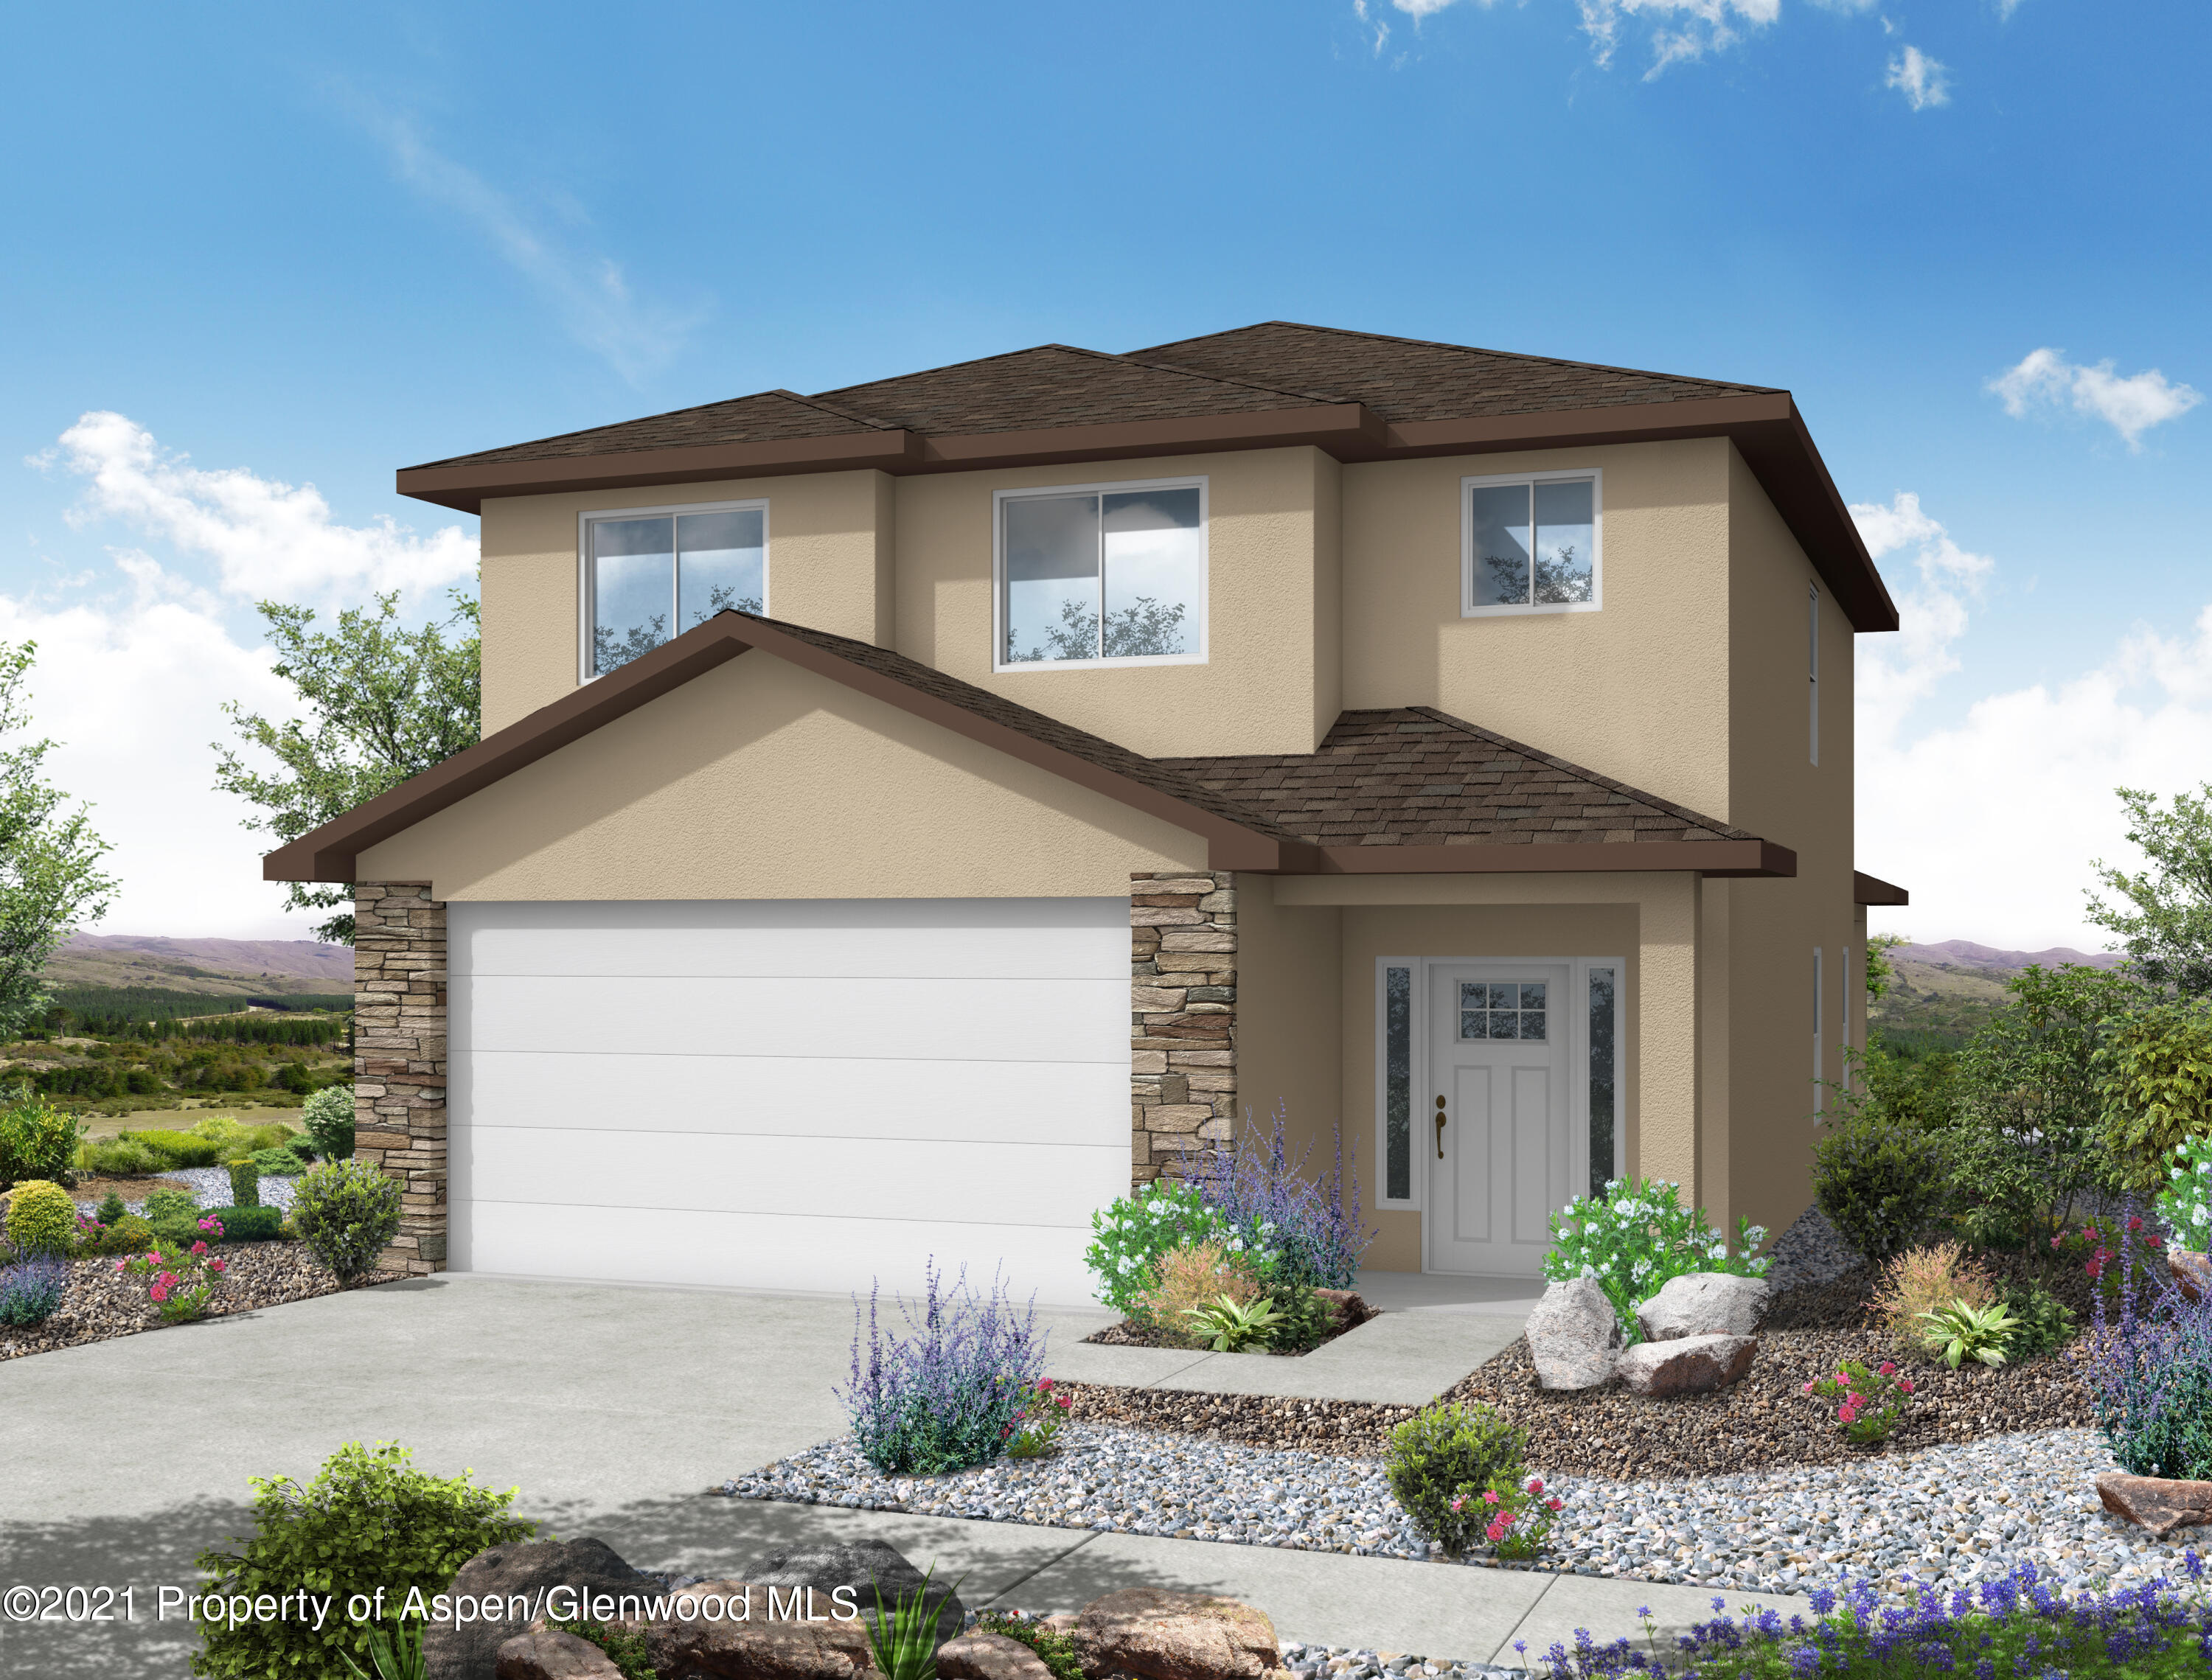 Pre-sold new construction under contract before MLS. Two story, 4 bedroom home. Exterior photo rendering to follow.